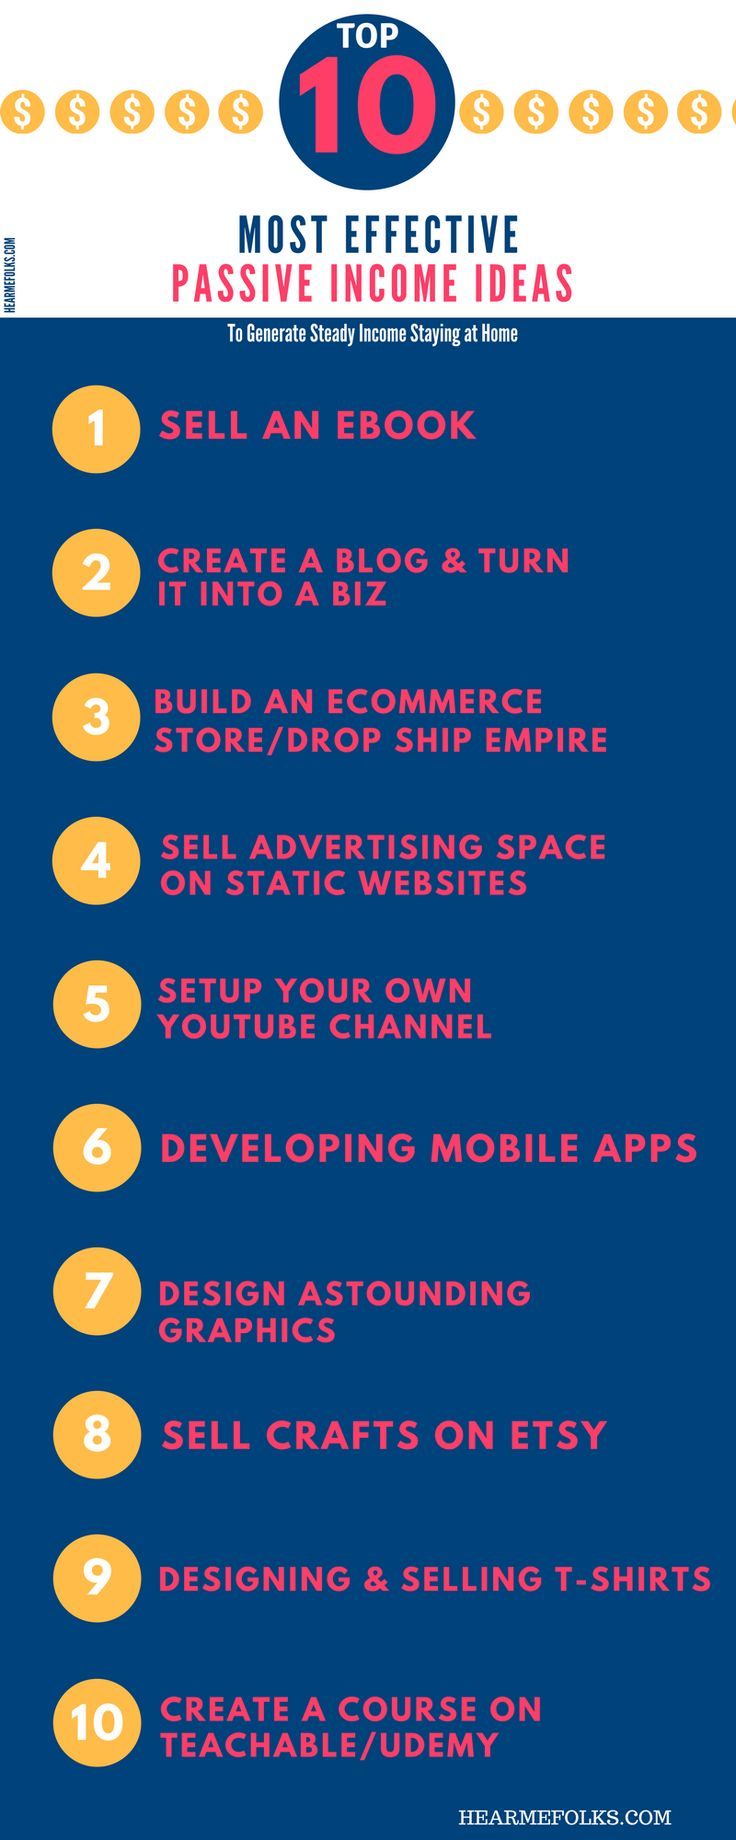 Start building diversity in your income streams this year by utilizing this list of passive income ideas with this infographic. Find one what fits your skills and objectives.